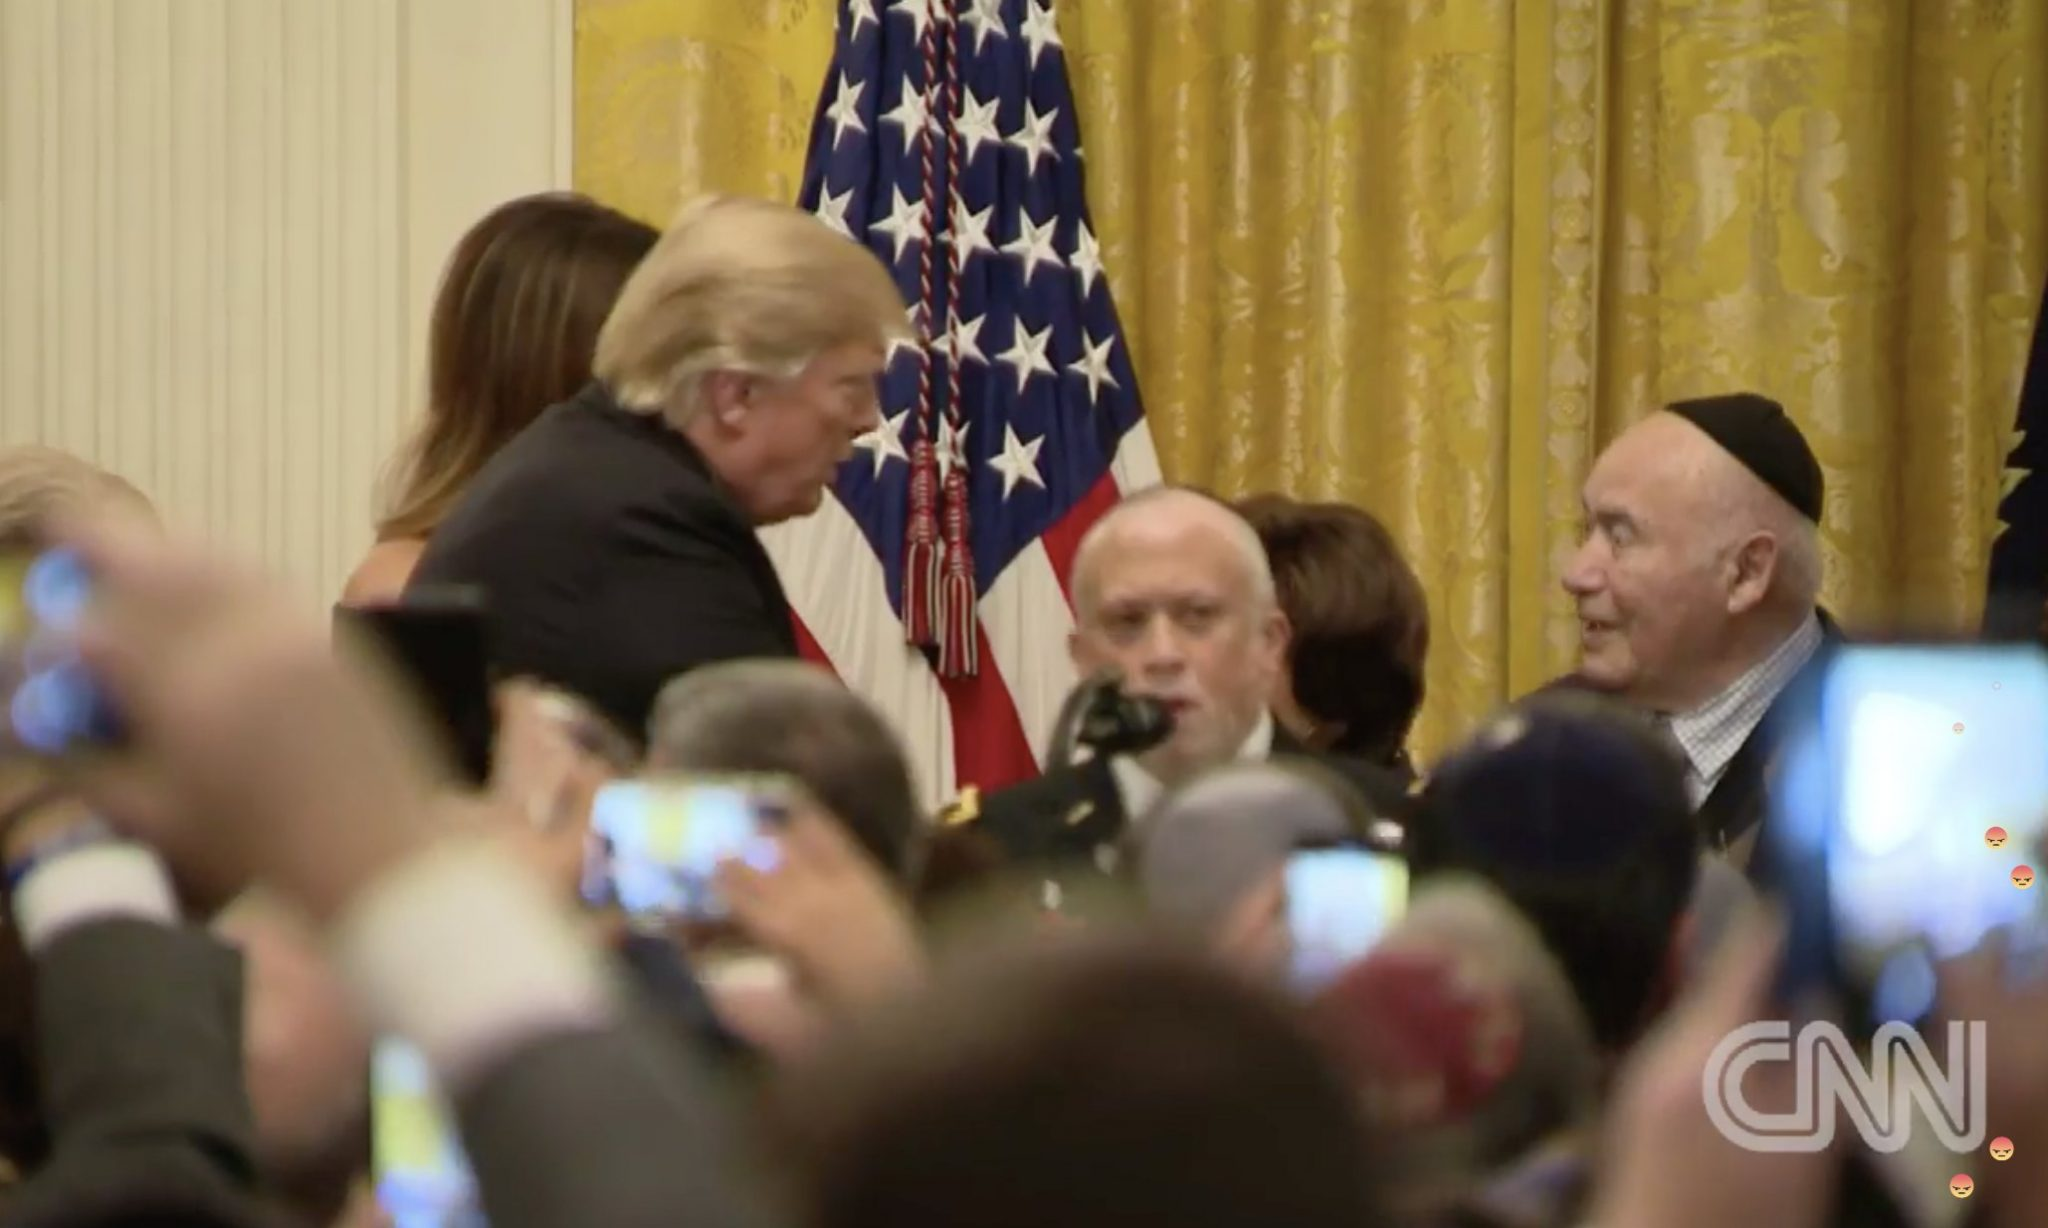 Trump at Hanukkah reception: Civilization is indebted to the Jewish people.